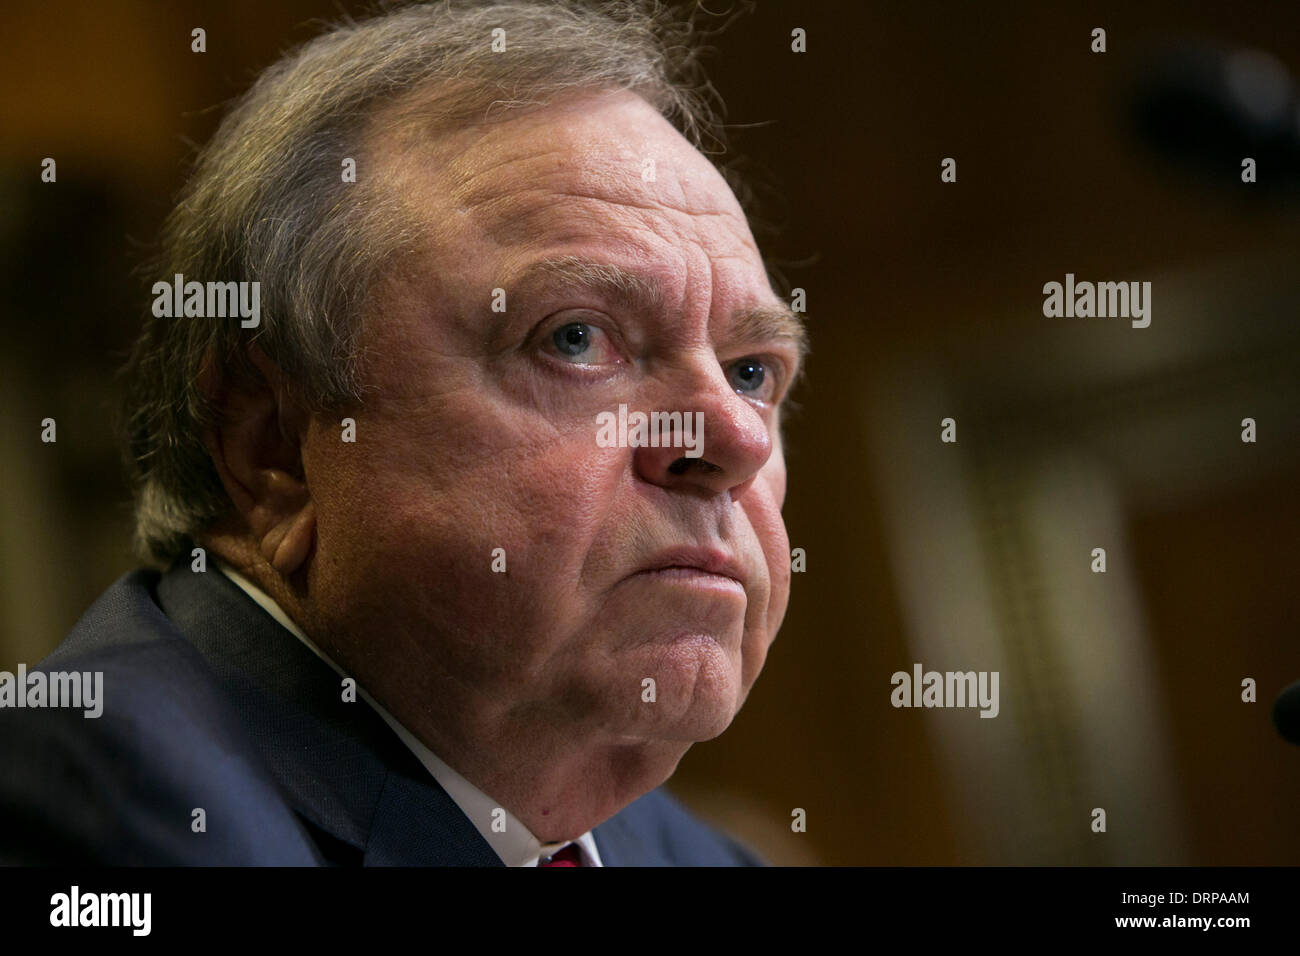 Washington DC, USA . 30th Jan, 2014. Harold Hamm, chairman and CEO of Continental Resources testifies before the Senate Energy and Natural Resources Committee during a hearing on U.S. oil exports in Washington, D.C., on January 30, 2014. Credit:  Kristoffer Tripplaar/Alamy Live News - Stock Image